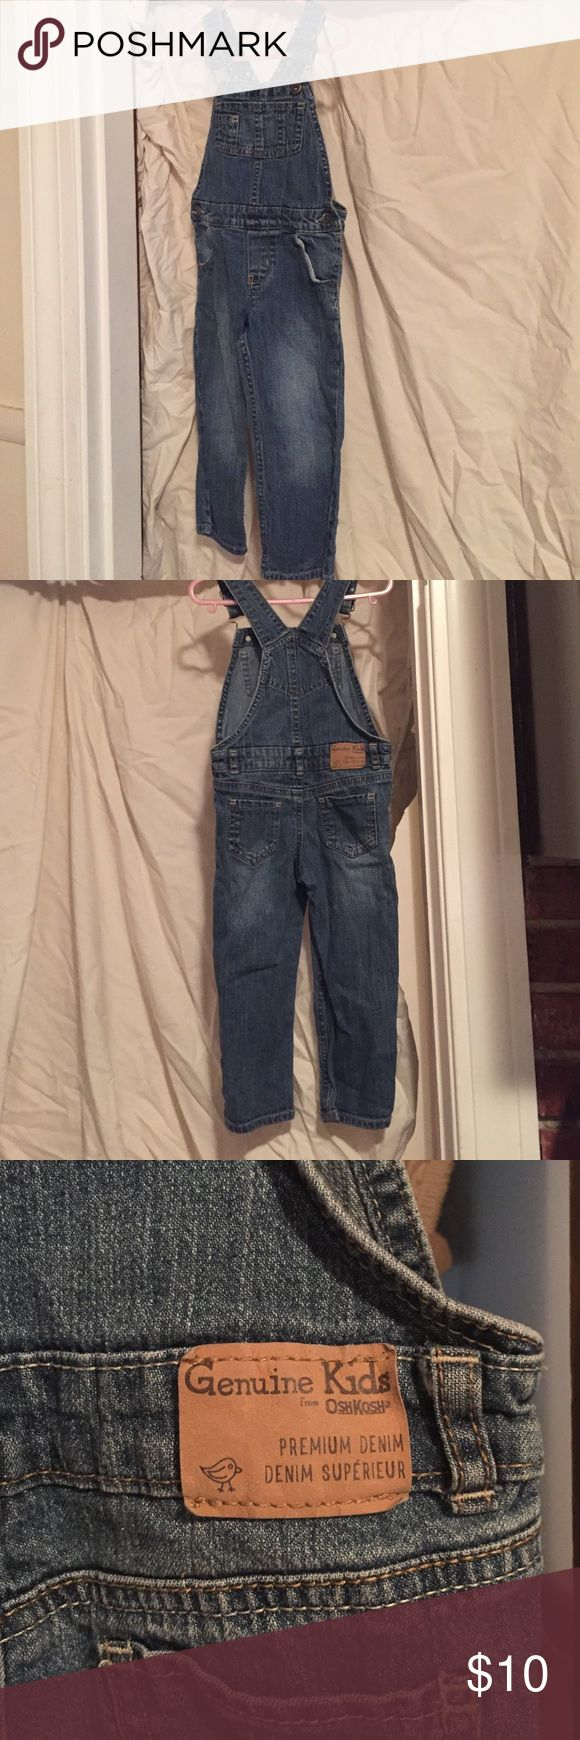 Toddler kids denim jeans overalls. Toddler demin jeans overalls. Osh Kosh One Pieces